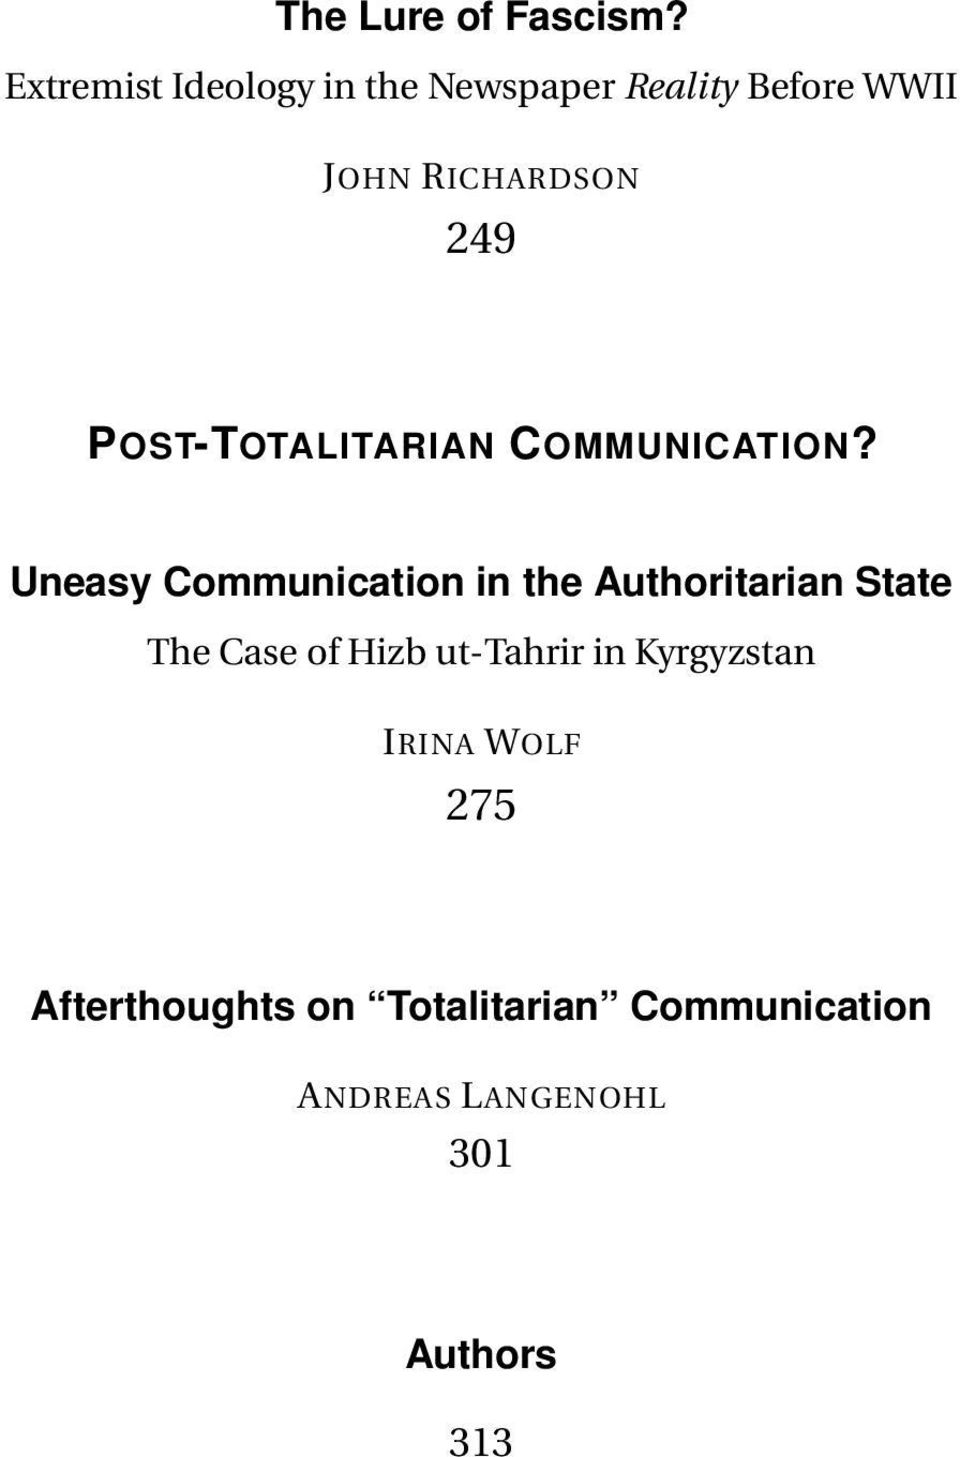 POST-TOTALITARIAN COMMUNICATION?